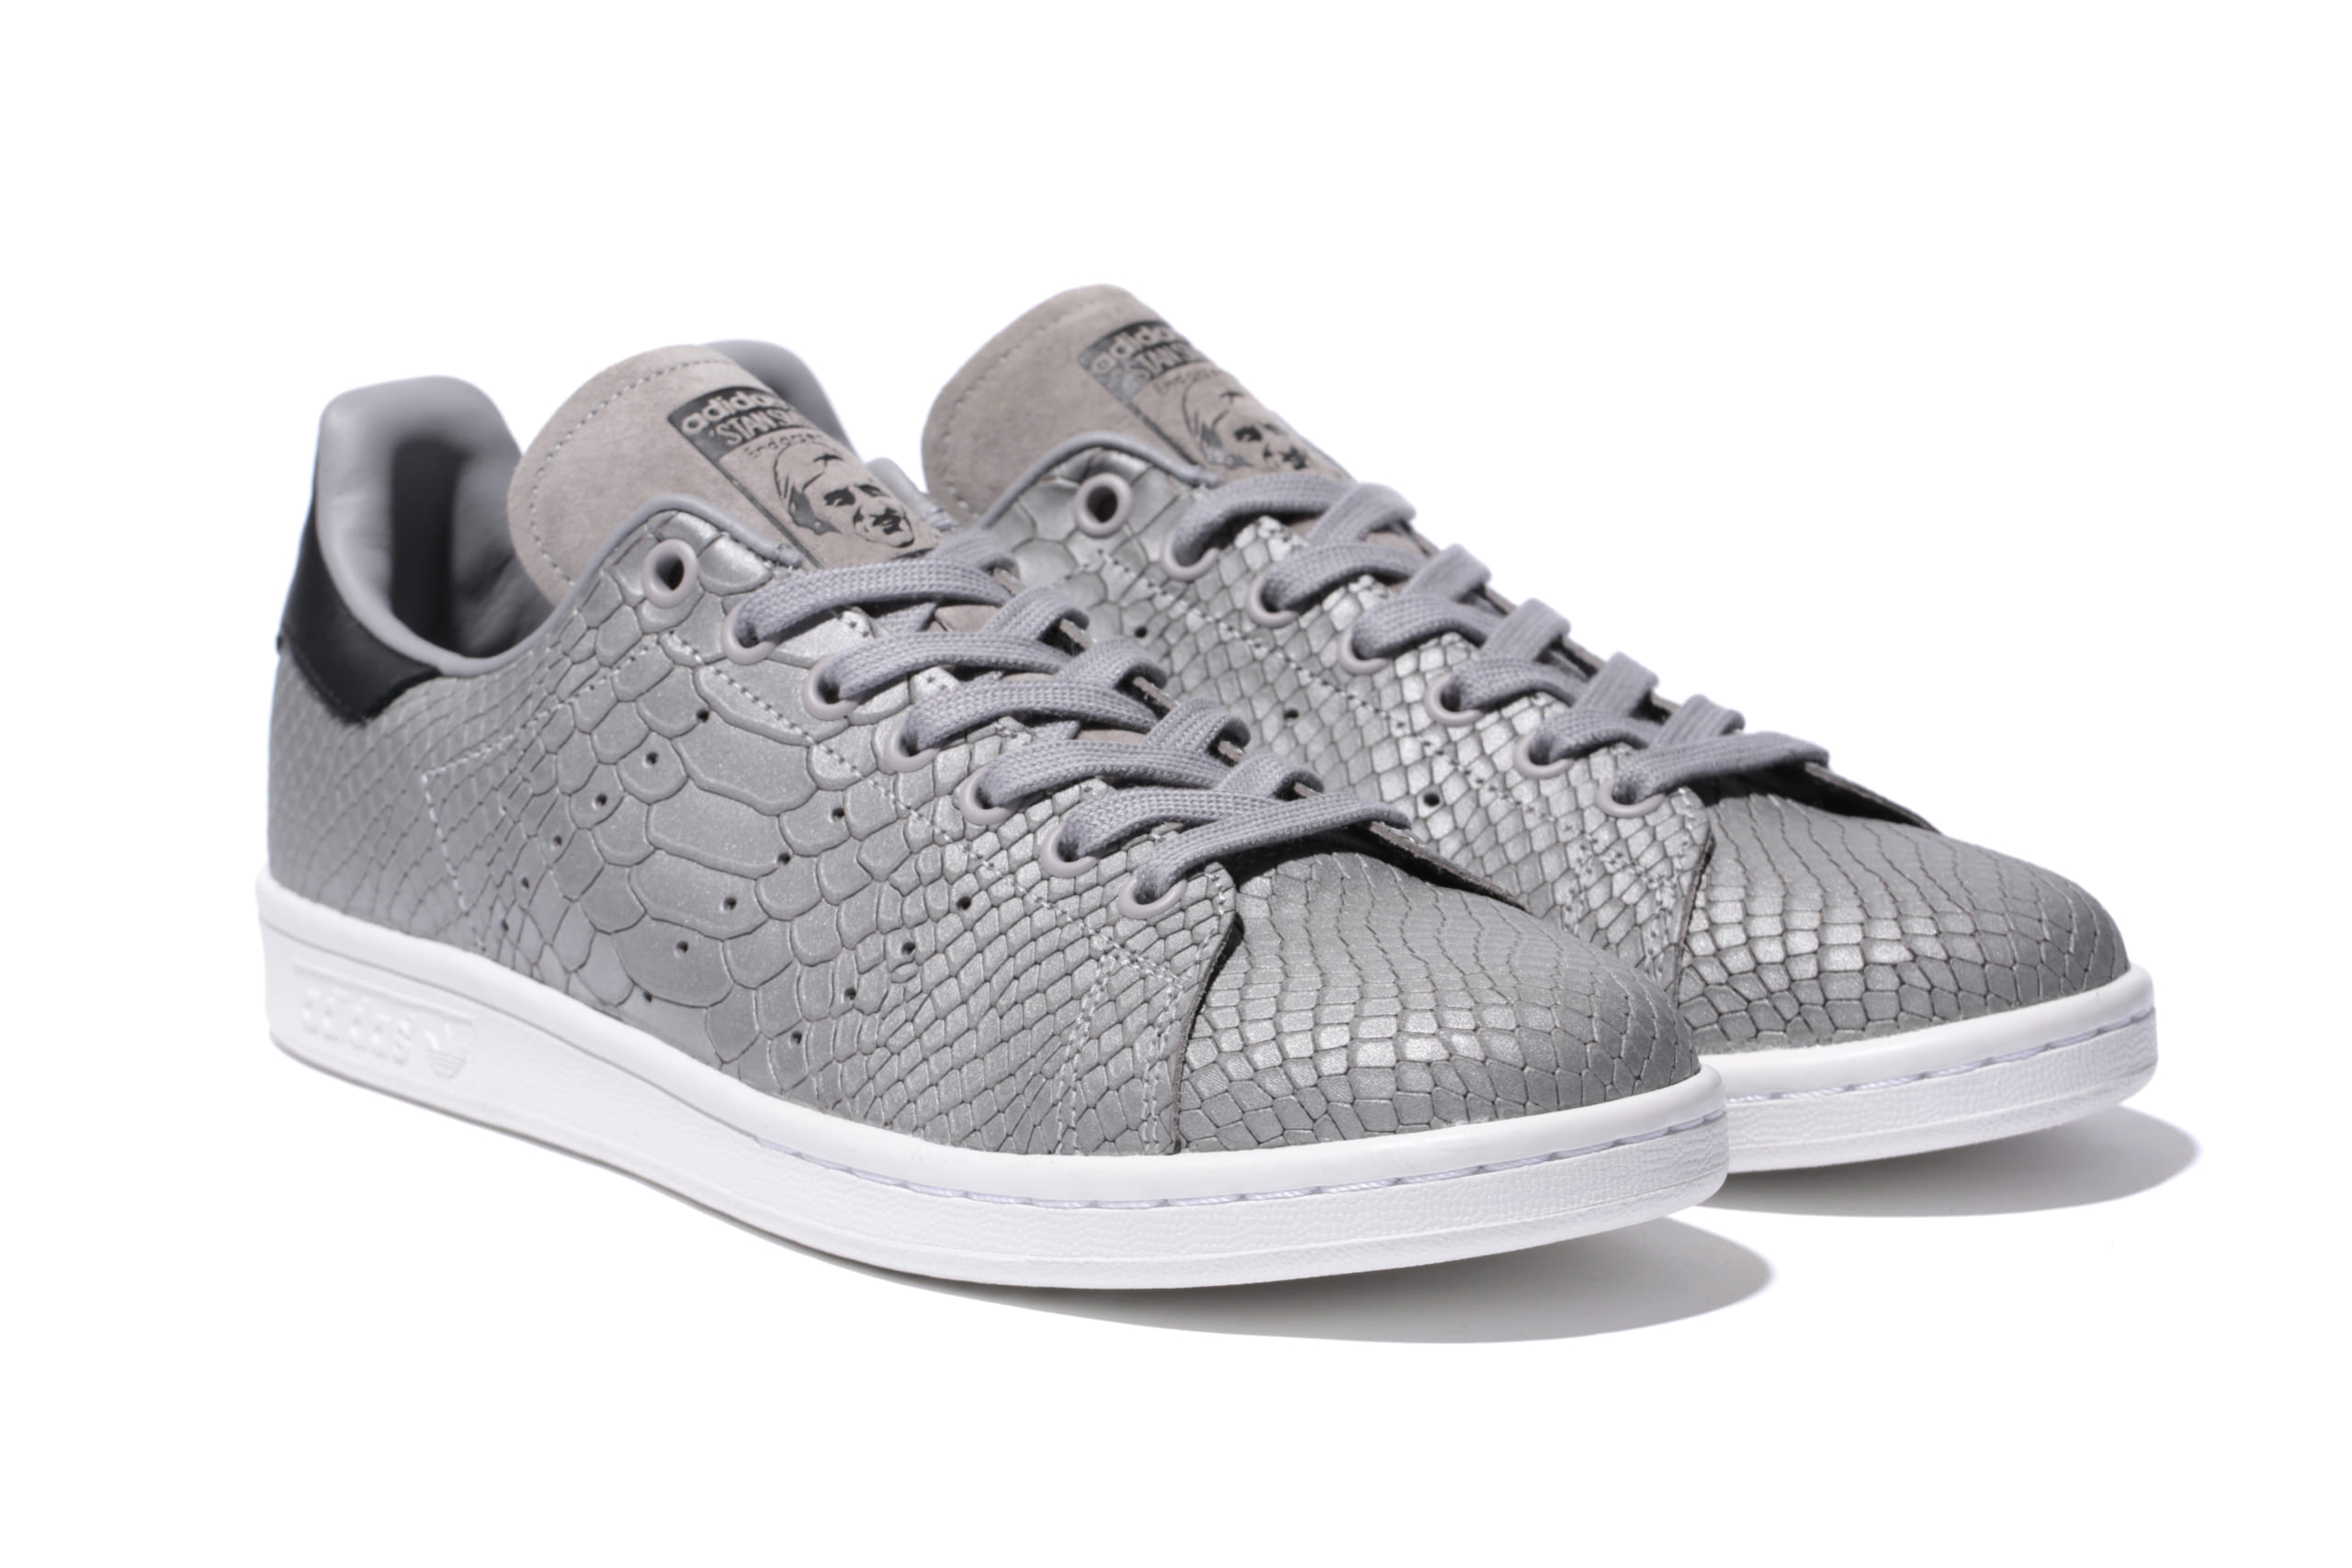 adidas Originals/Stan Smith <br />【SNEAKER JACK DAILY #045】